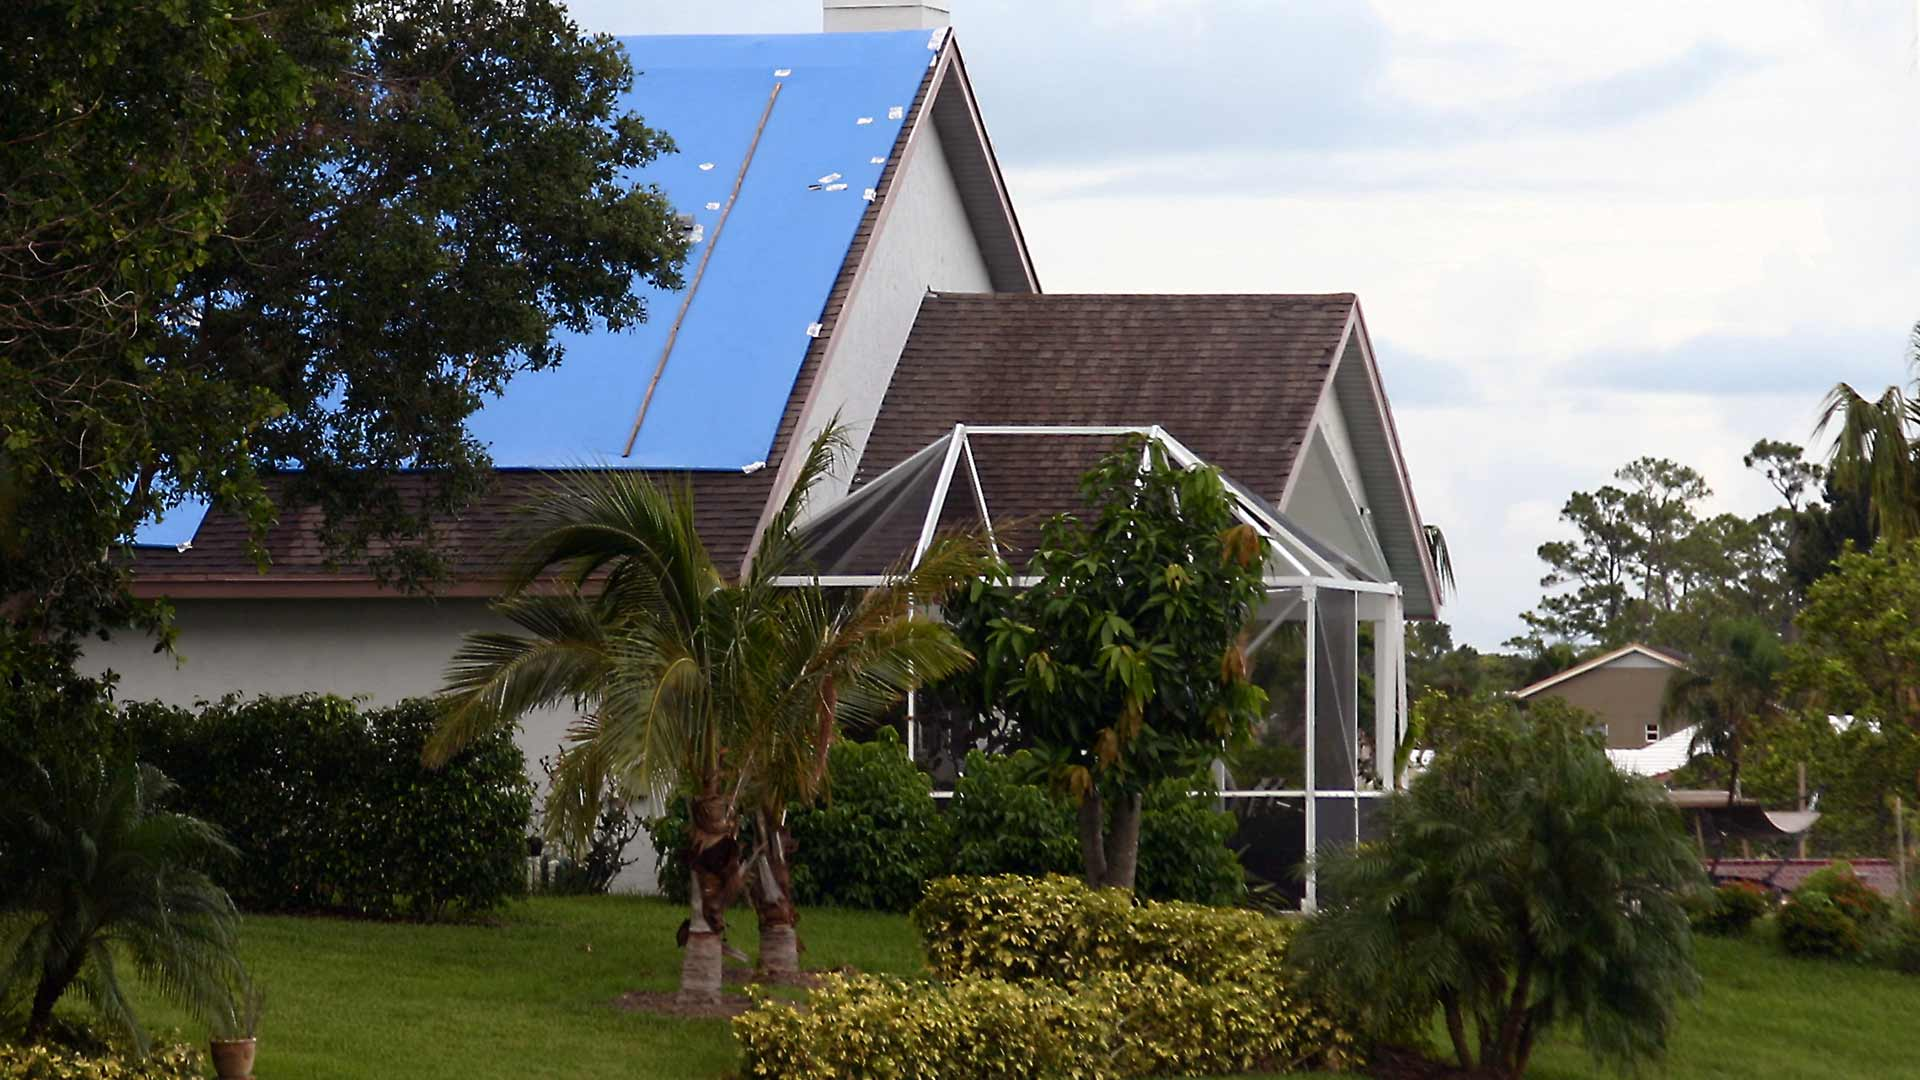 Is a Tarp Effective for Protecting Your Home After a Hurricane?